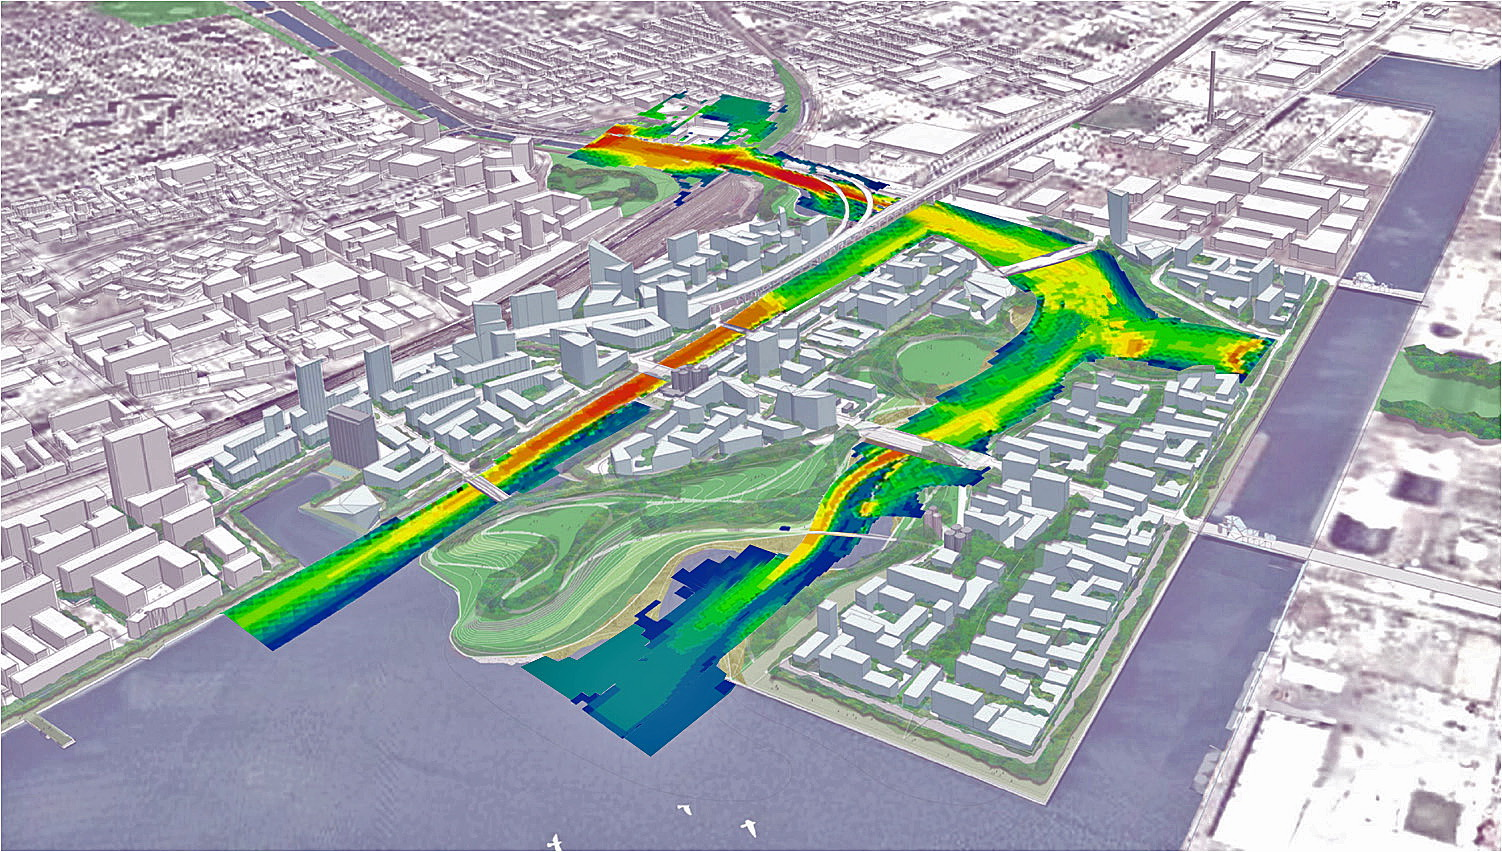 Newly designed channel, overlaid with water velocities, of the Don Mouth Naturalization and Port Lands Flood Protection Project in Toronto, Canada.